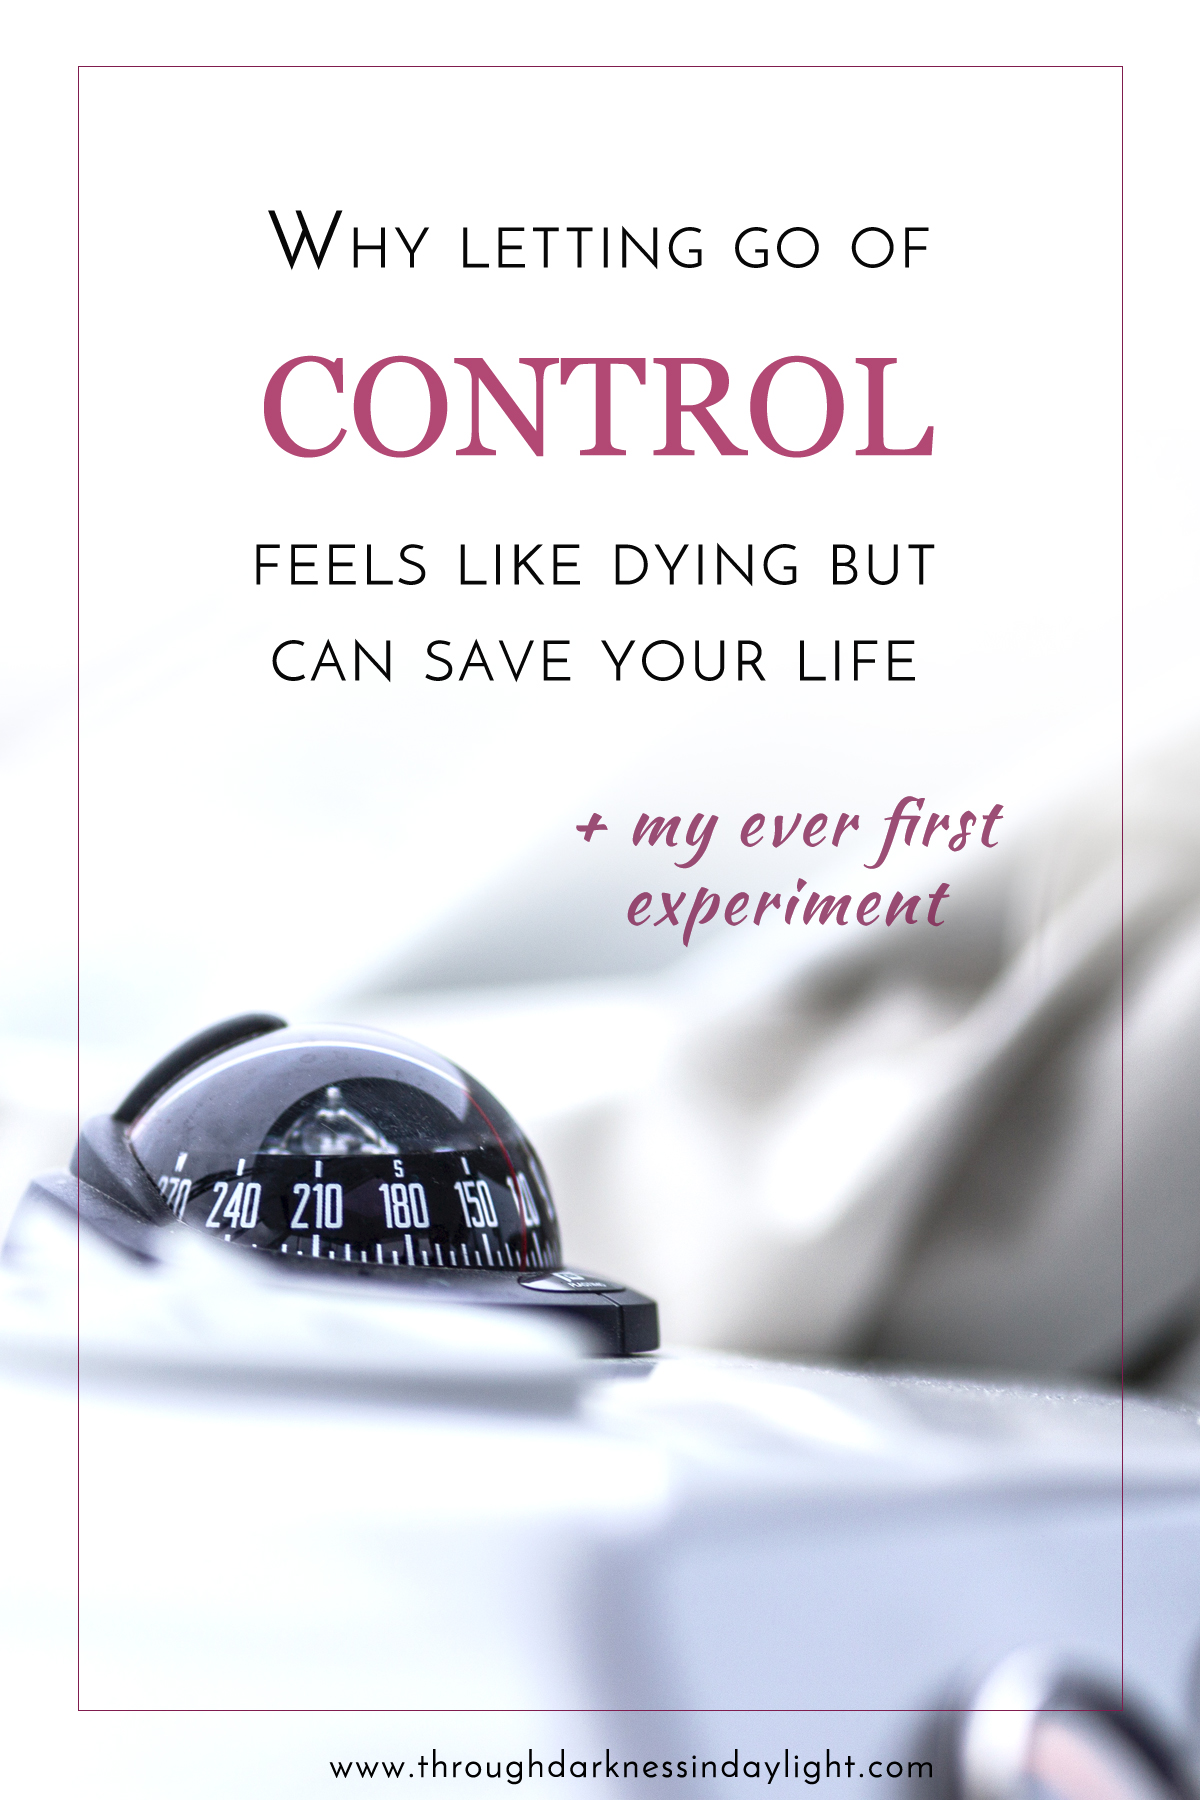 Why letting go of control feels like dying but can save your life